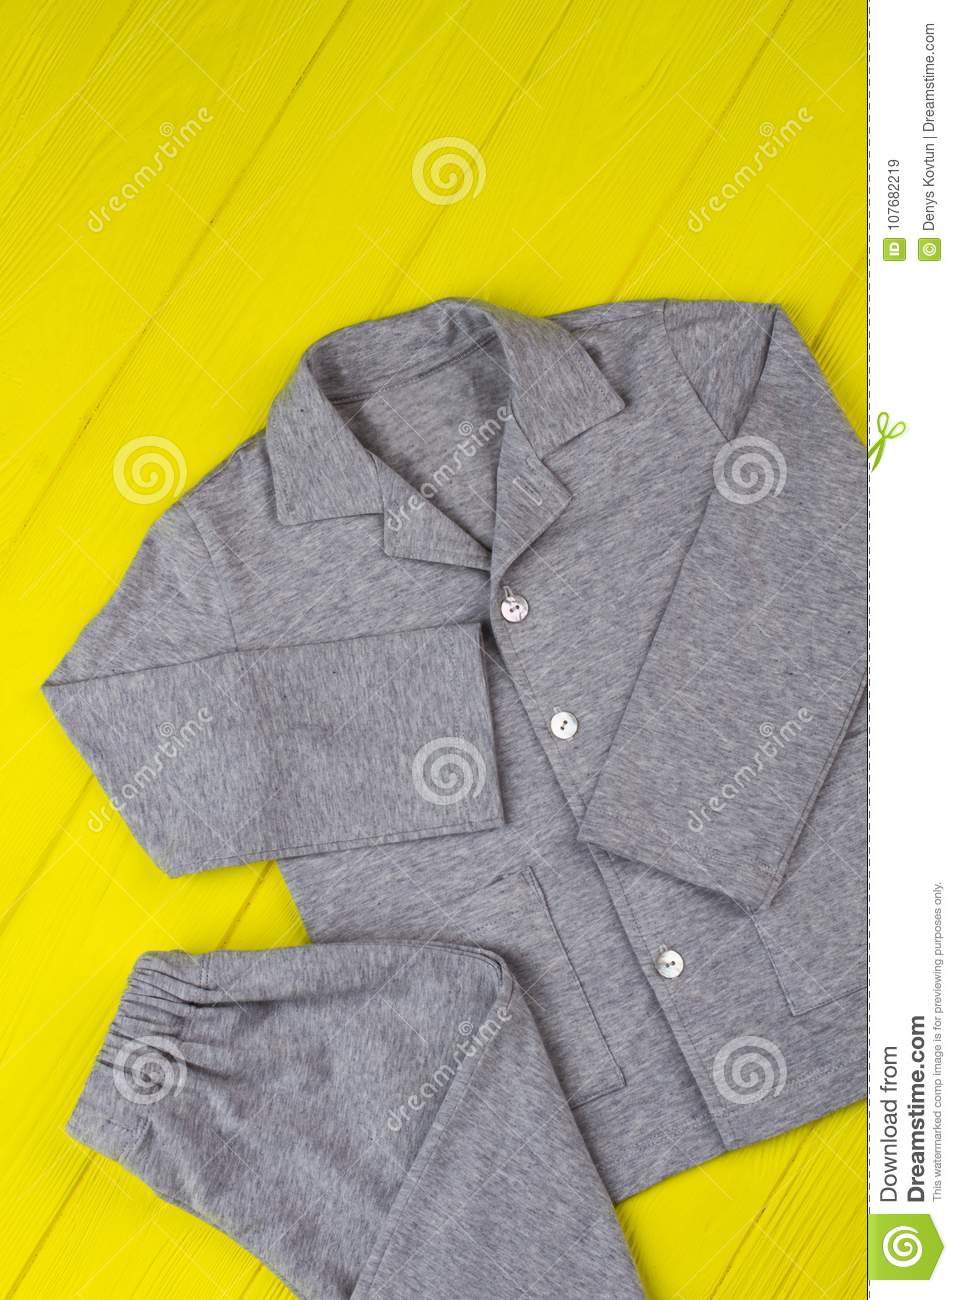 6c1f14a06cfd Gray pajama set for boys. Loose pants and shirt made of soft cotton. Warm  and comfy for winter nights.